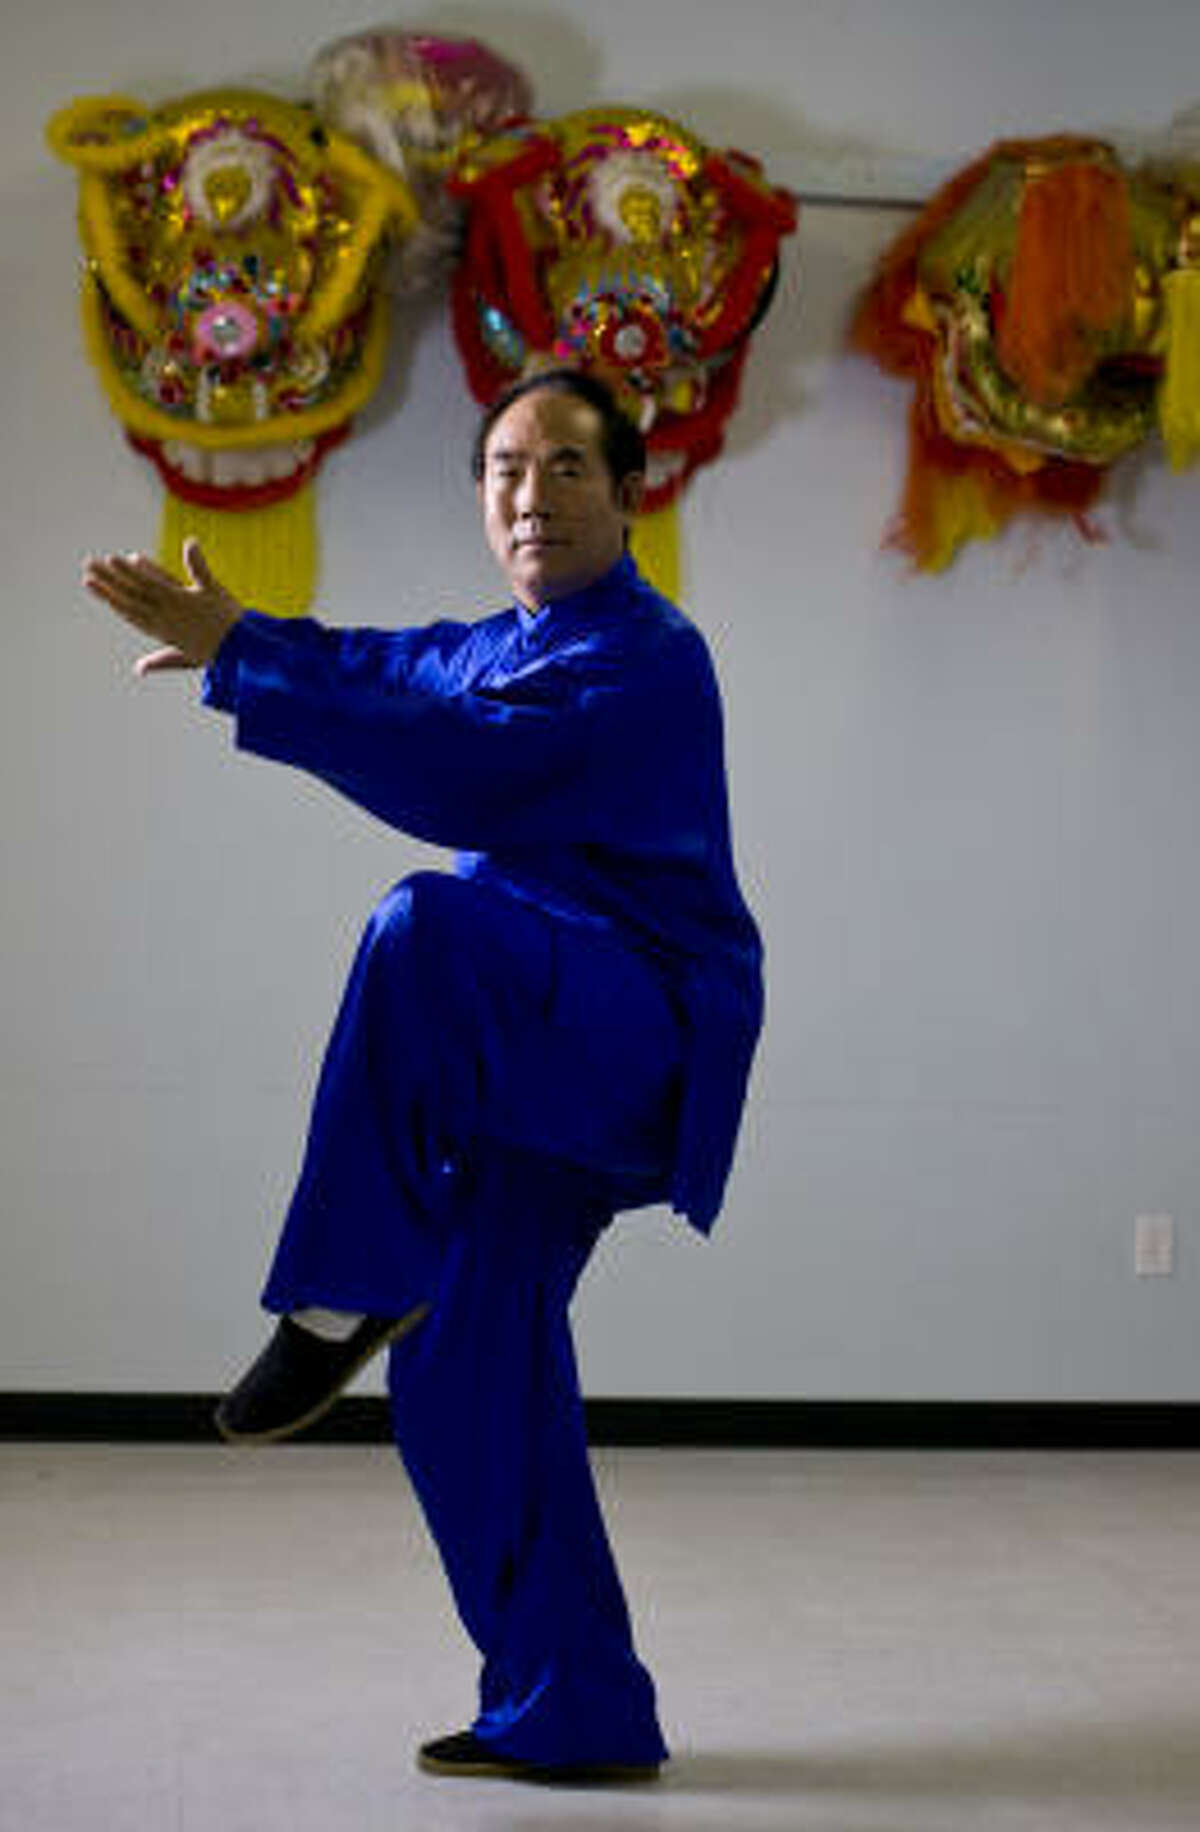 After leasing at another site for 15 years, Jincai Cheng, owner of Chen Style Tai Chi Development Center, bought space in Sterling Plaza a year ago.